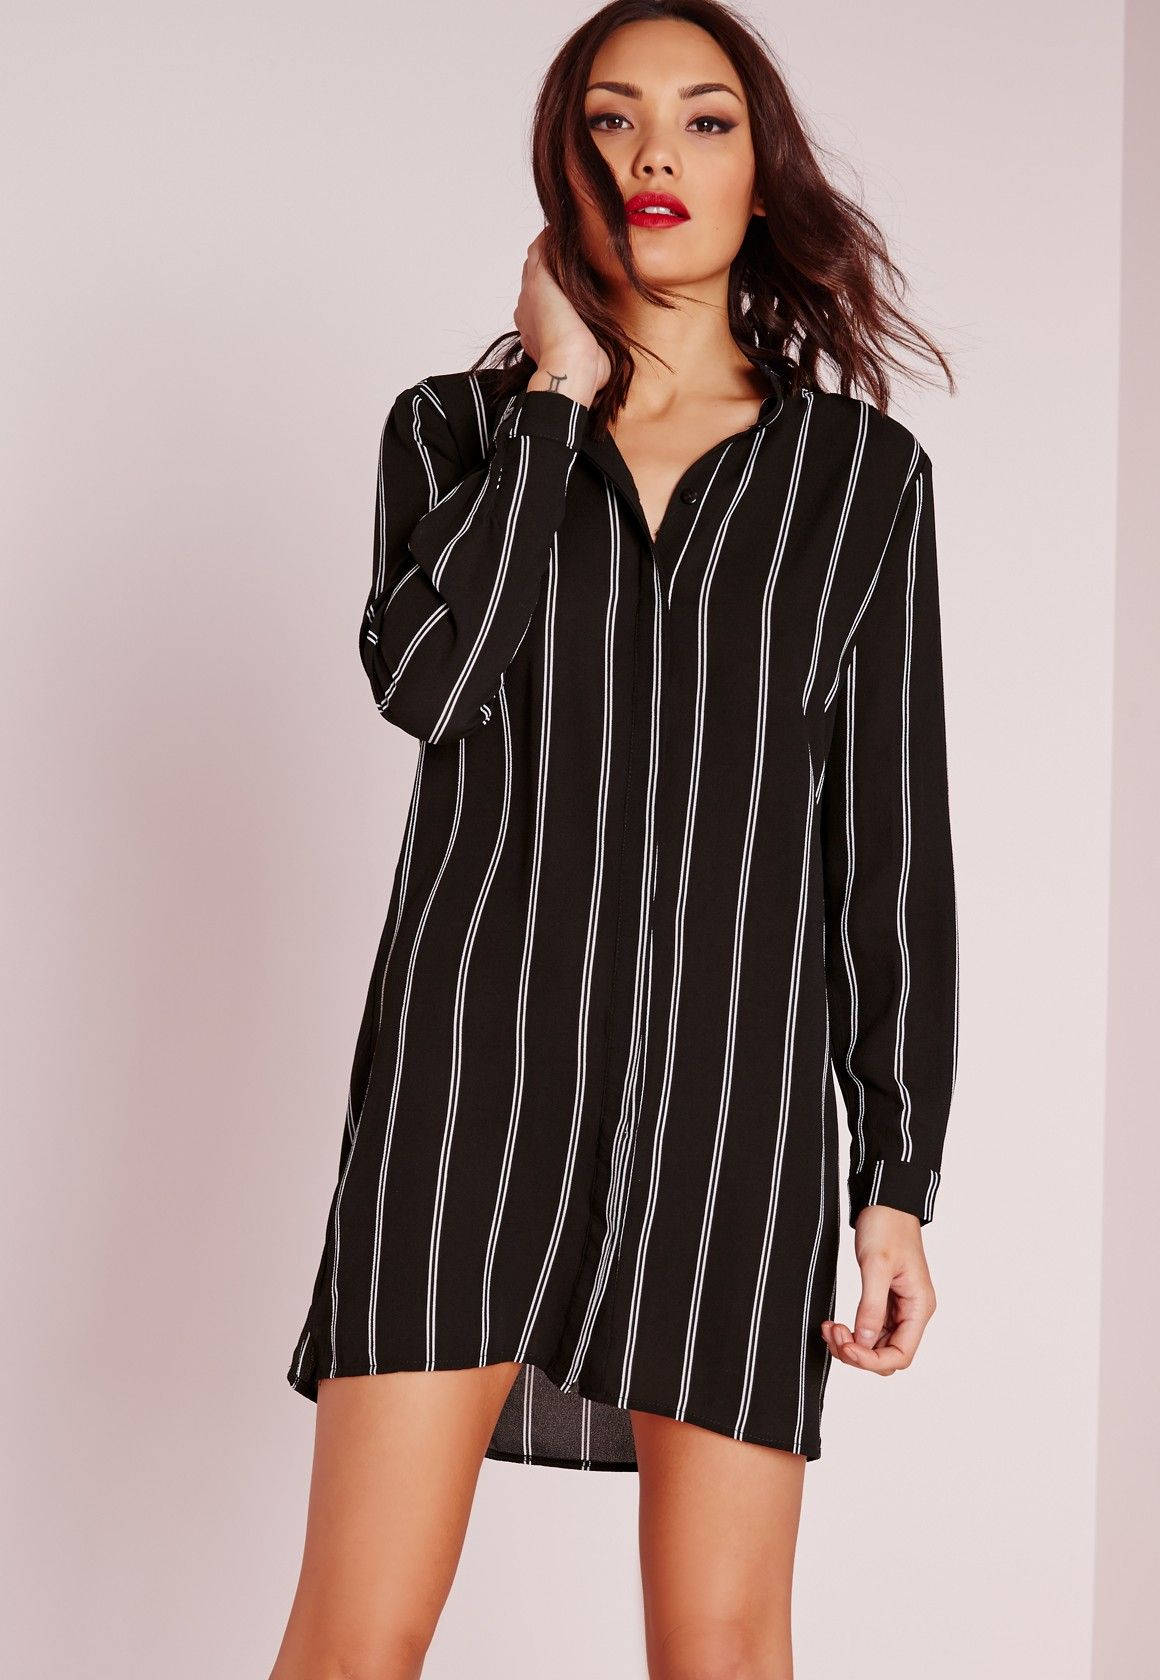 74a9057208d7b Keep your day style strong this season in this on point black striped shirt  dress.